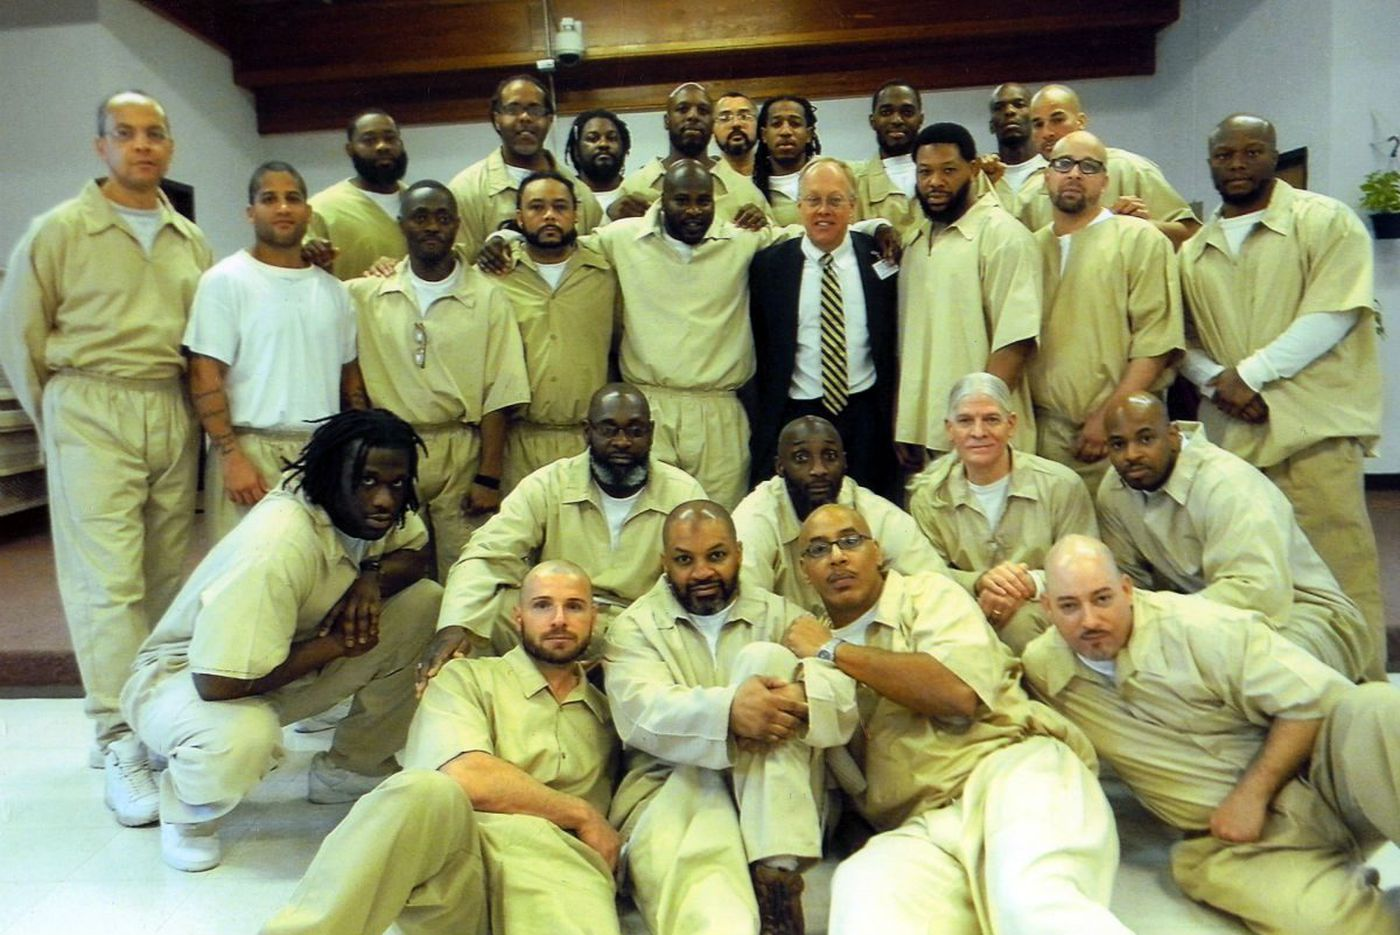 'Caged': How 28 inmates' tales of prison and poverty became New Jersey's must-see play